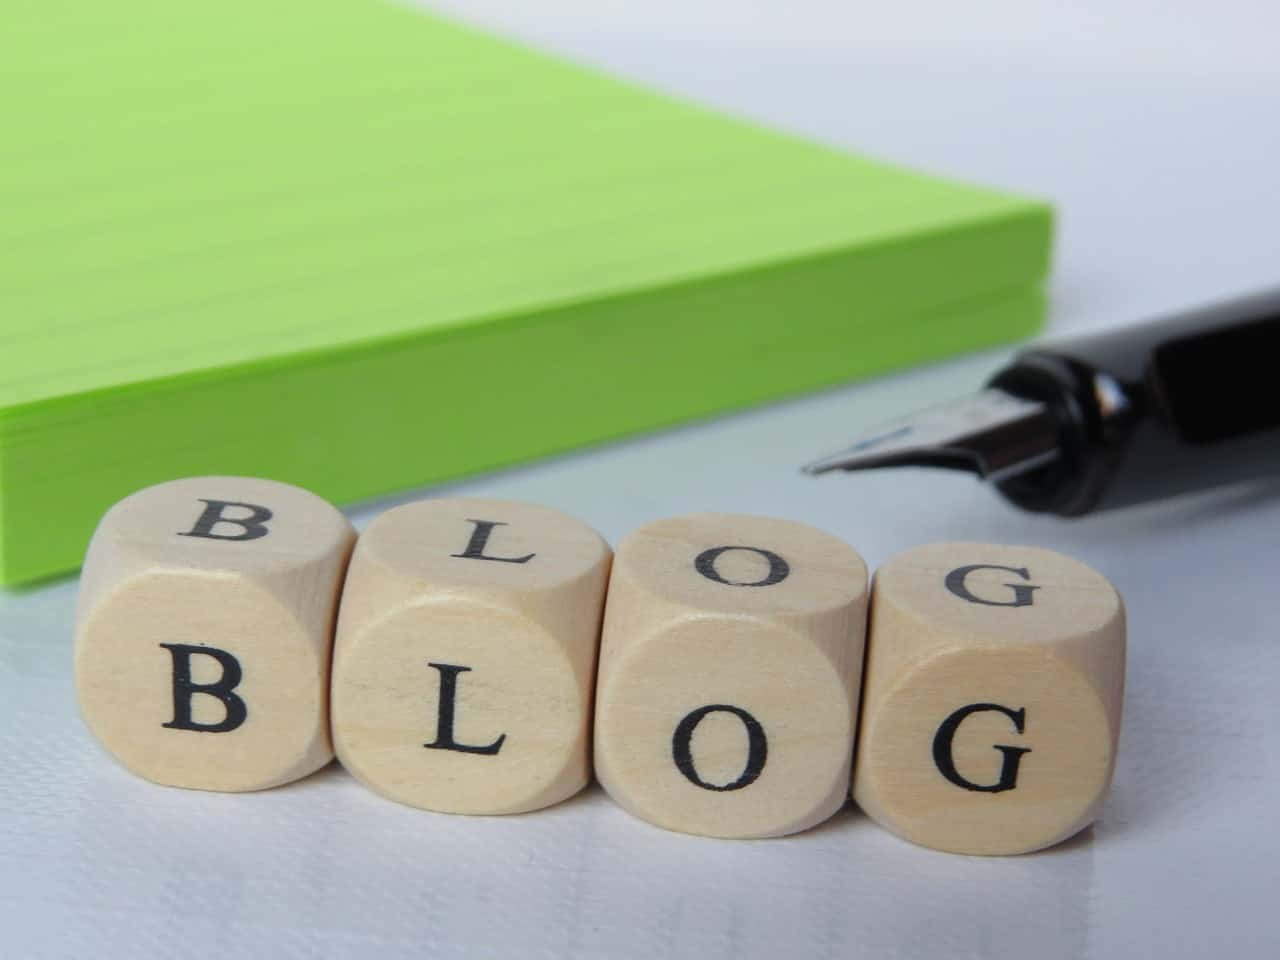 Blog mit WordPress.org